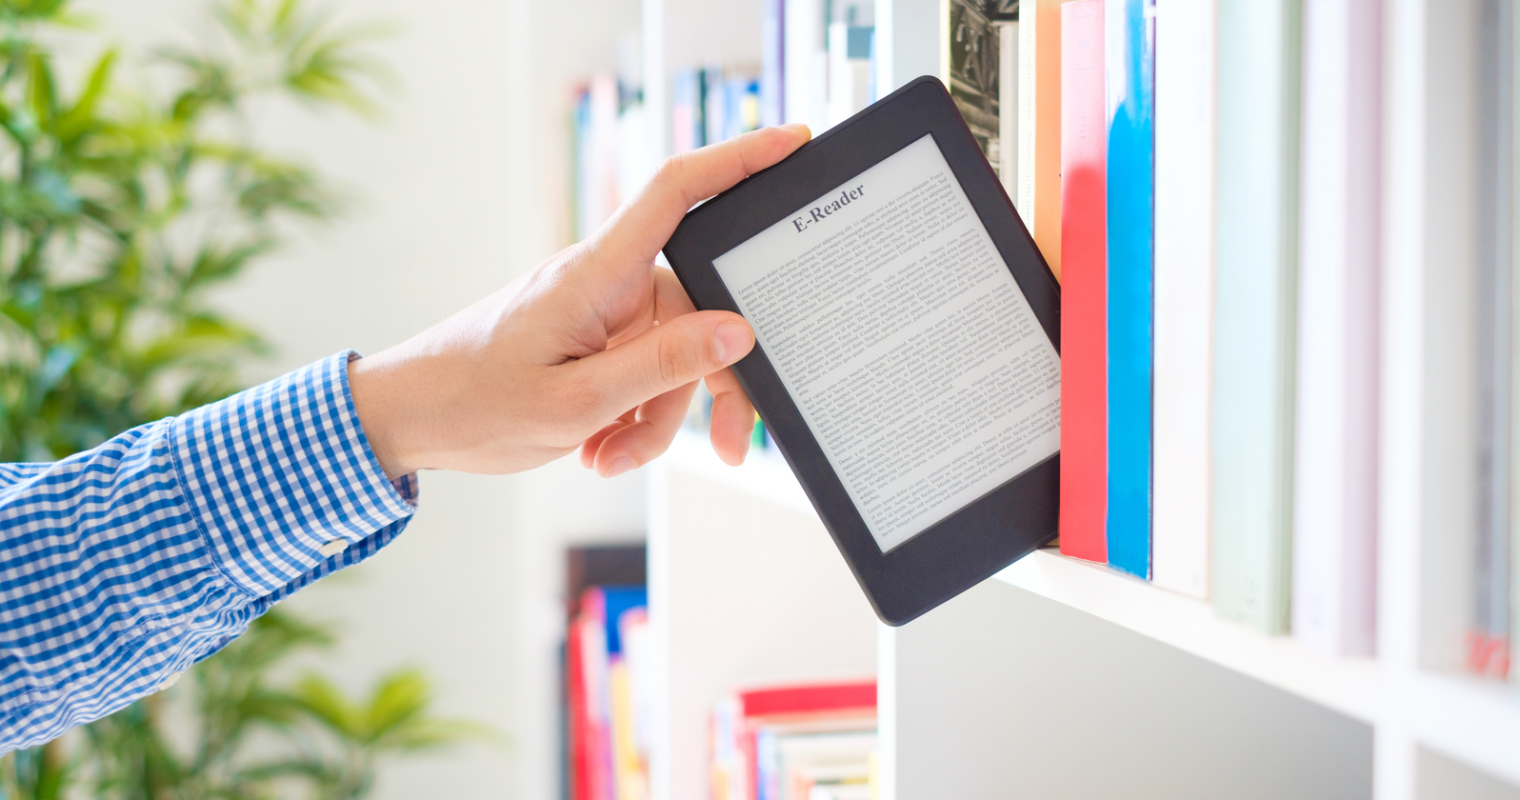 How to Write, Design & Promote an Ebook: A Complete Guide